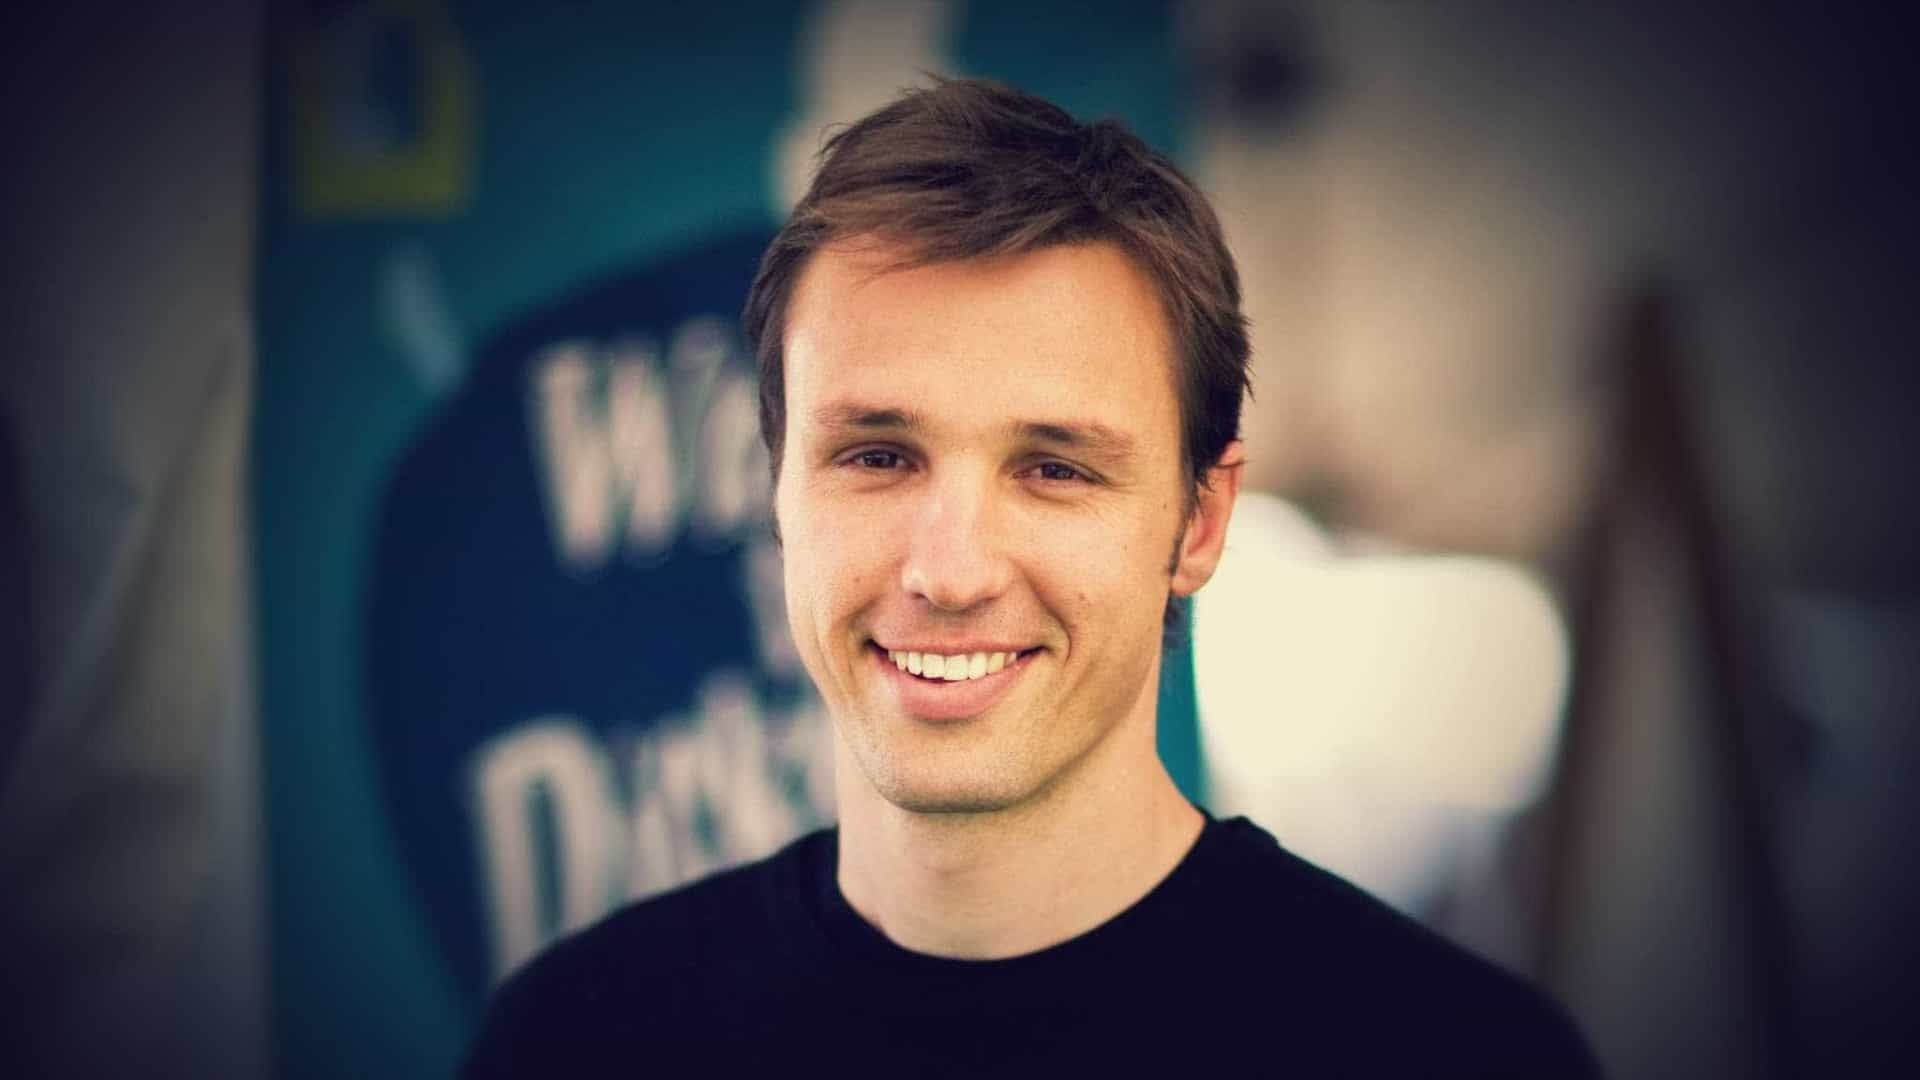 Markus Zusak vai lançar novo romance: 'Bridge of Clay'